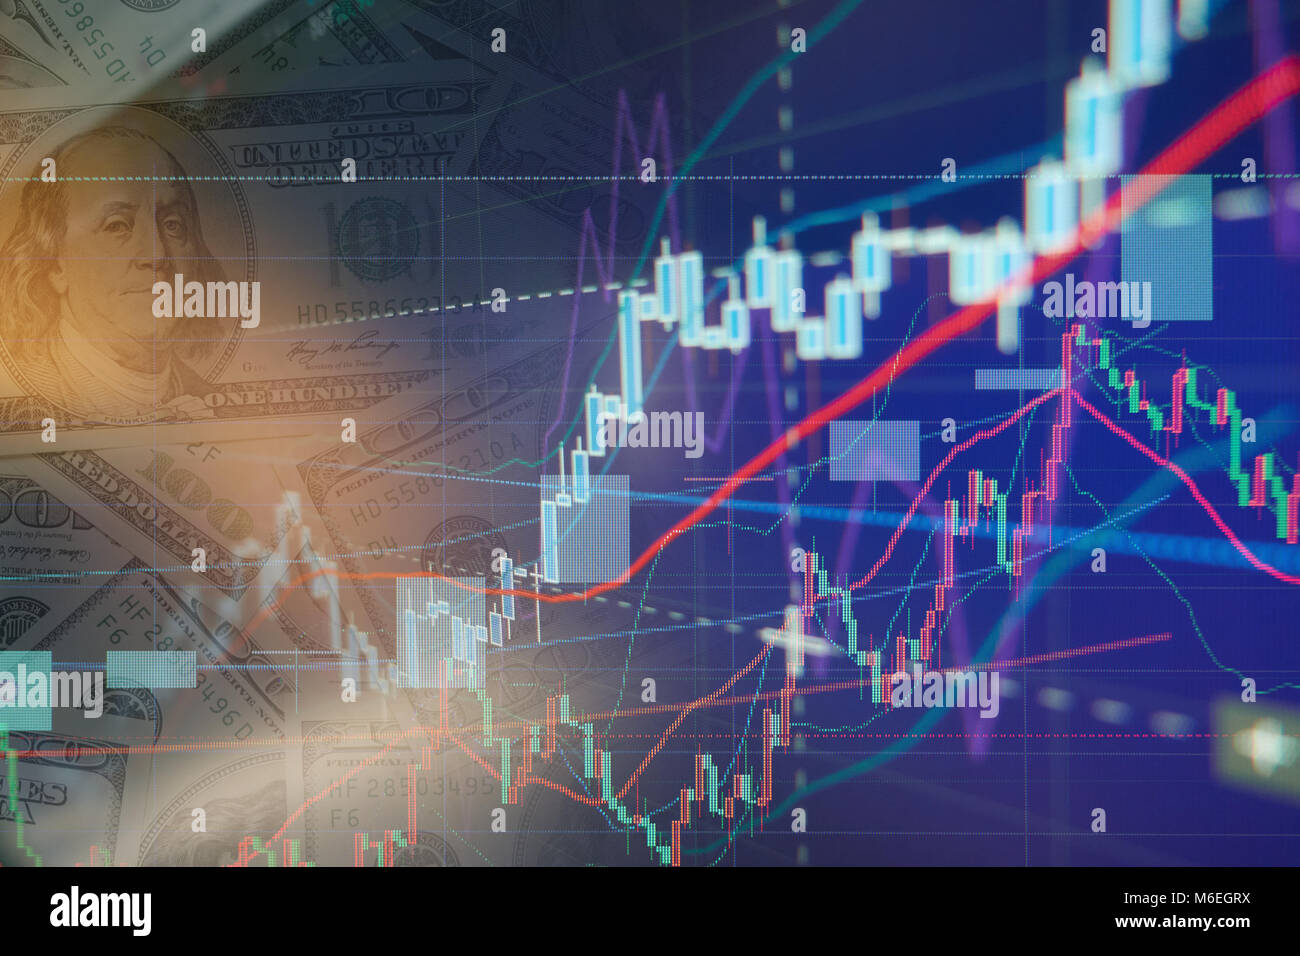 Stock exchange chart graphs - Finance business background - Stock Image